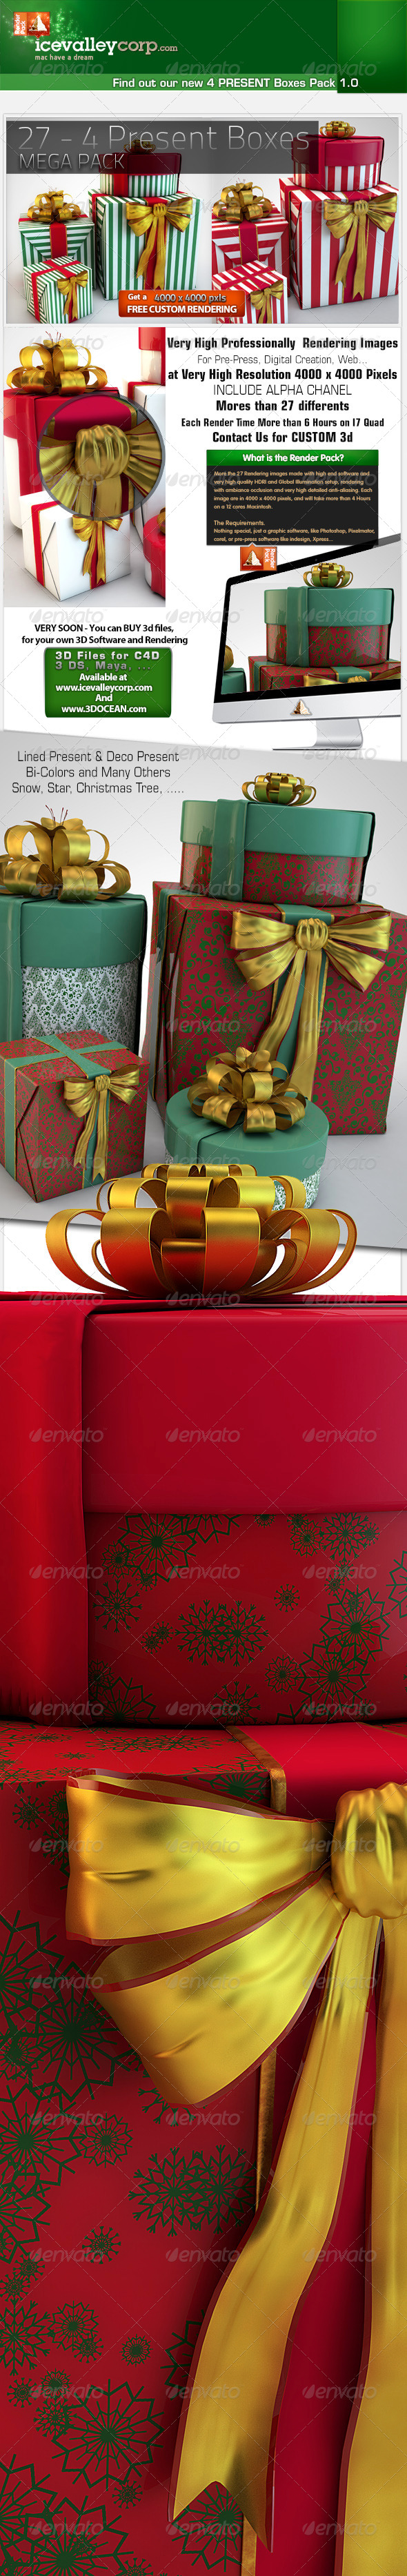 GraphicRiver 27th 4 Present Boxes in HirRes 6162520